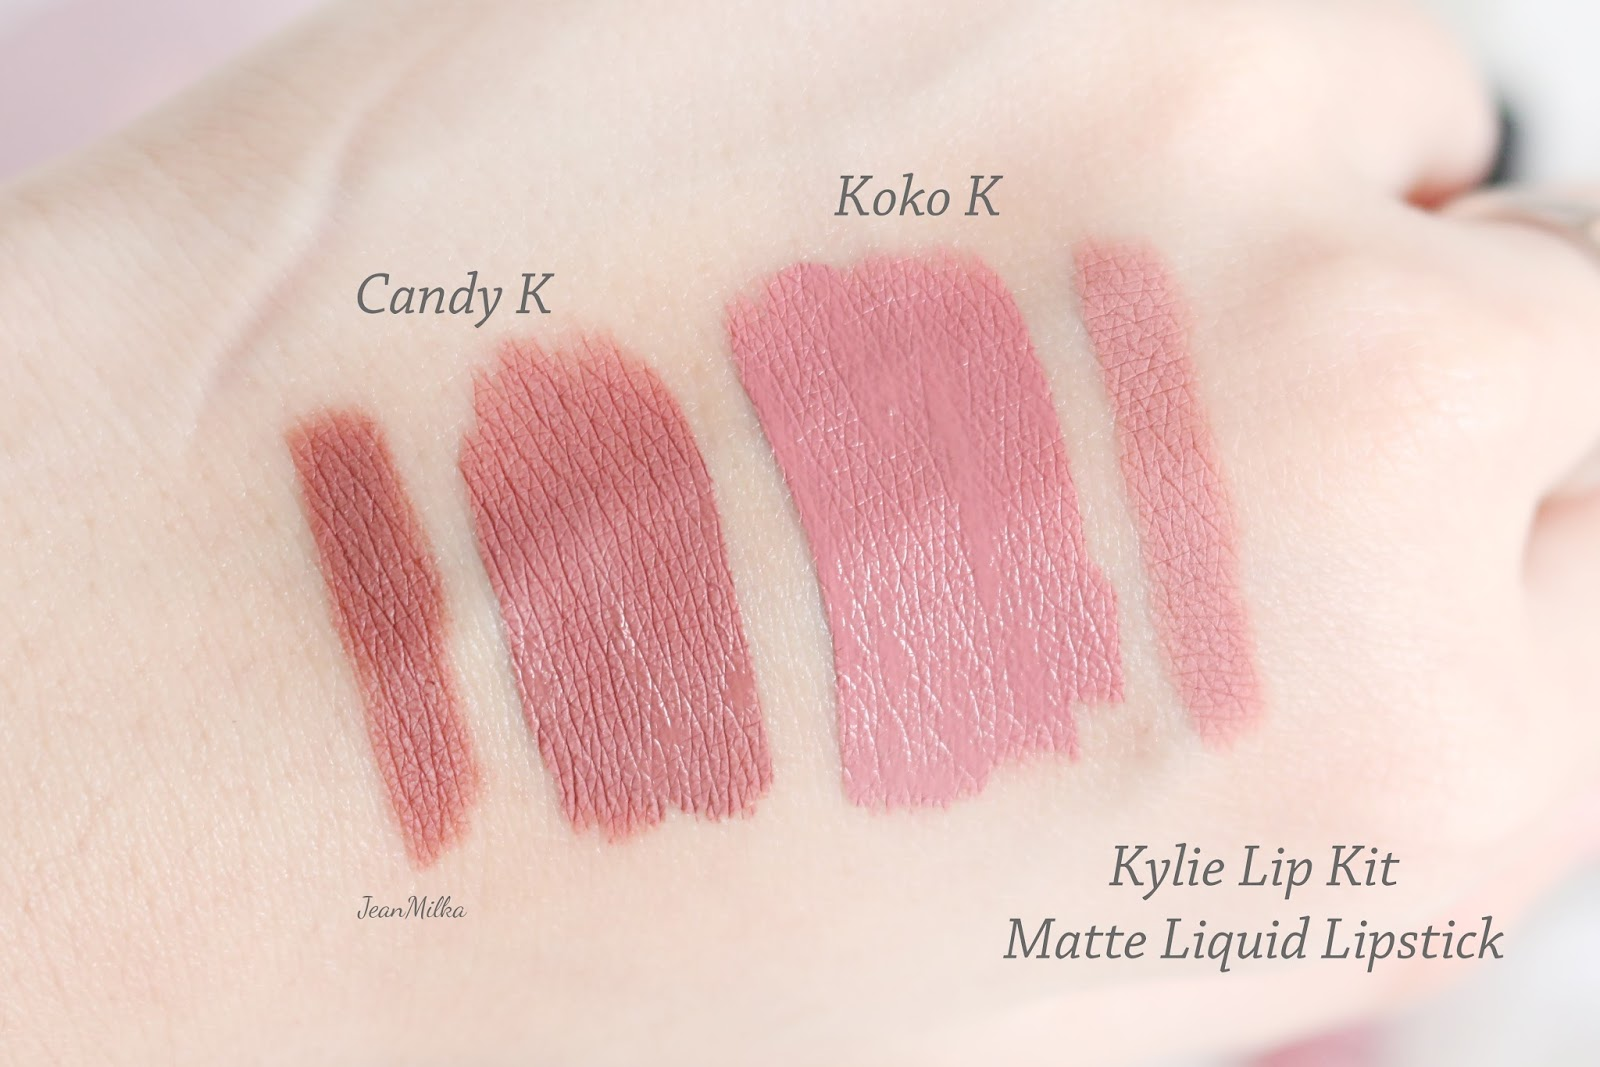 review kylie lip kit, kylie lip kit, lip kit kylie, makeup, review, kylie cosmetics, kylie makeup